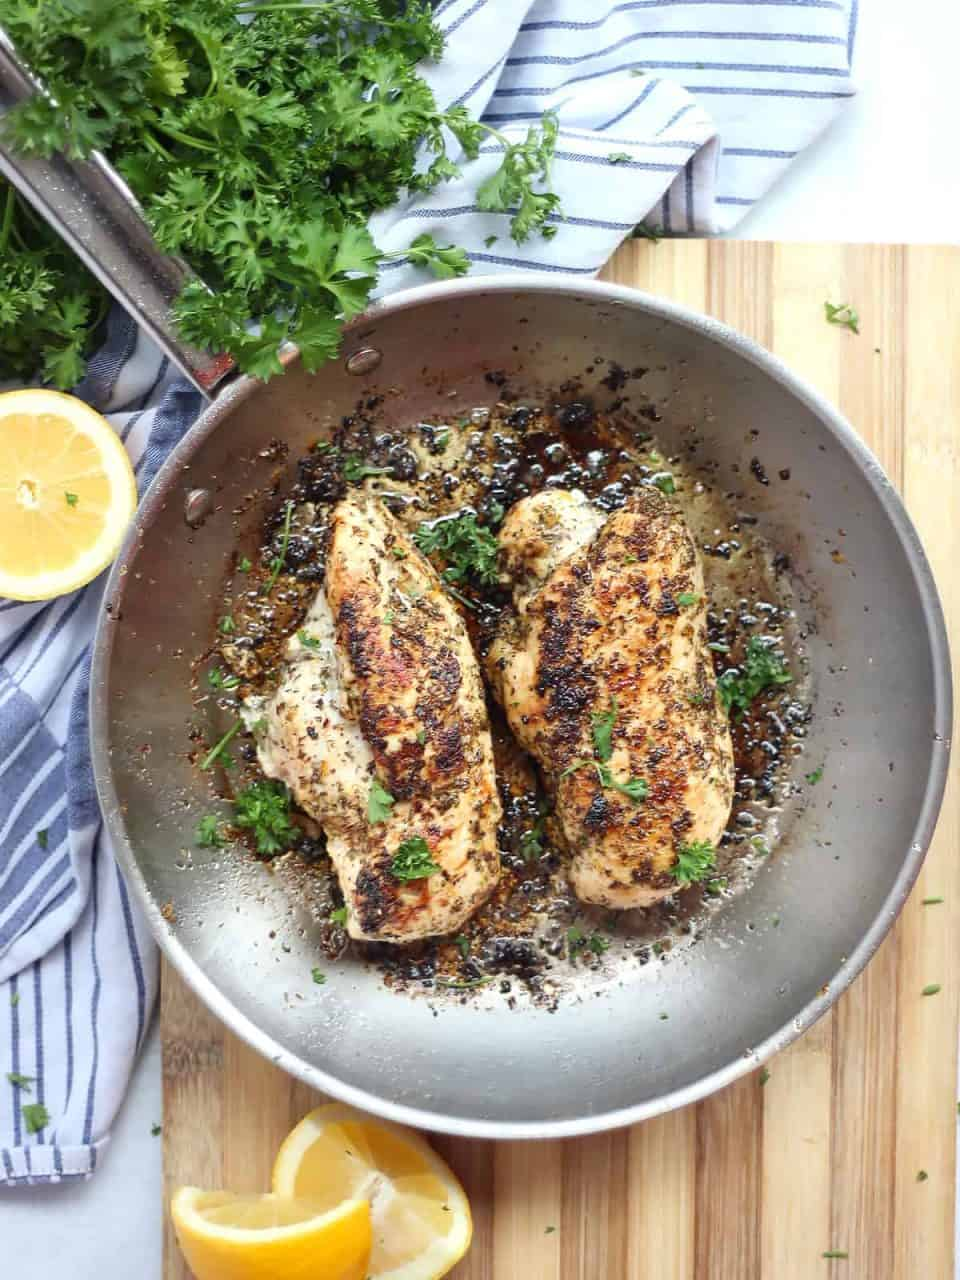 Two lemon oregano chicken breasts in a skillet garnished with fresh parsley.